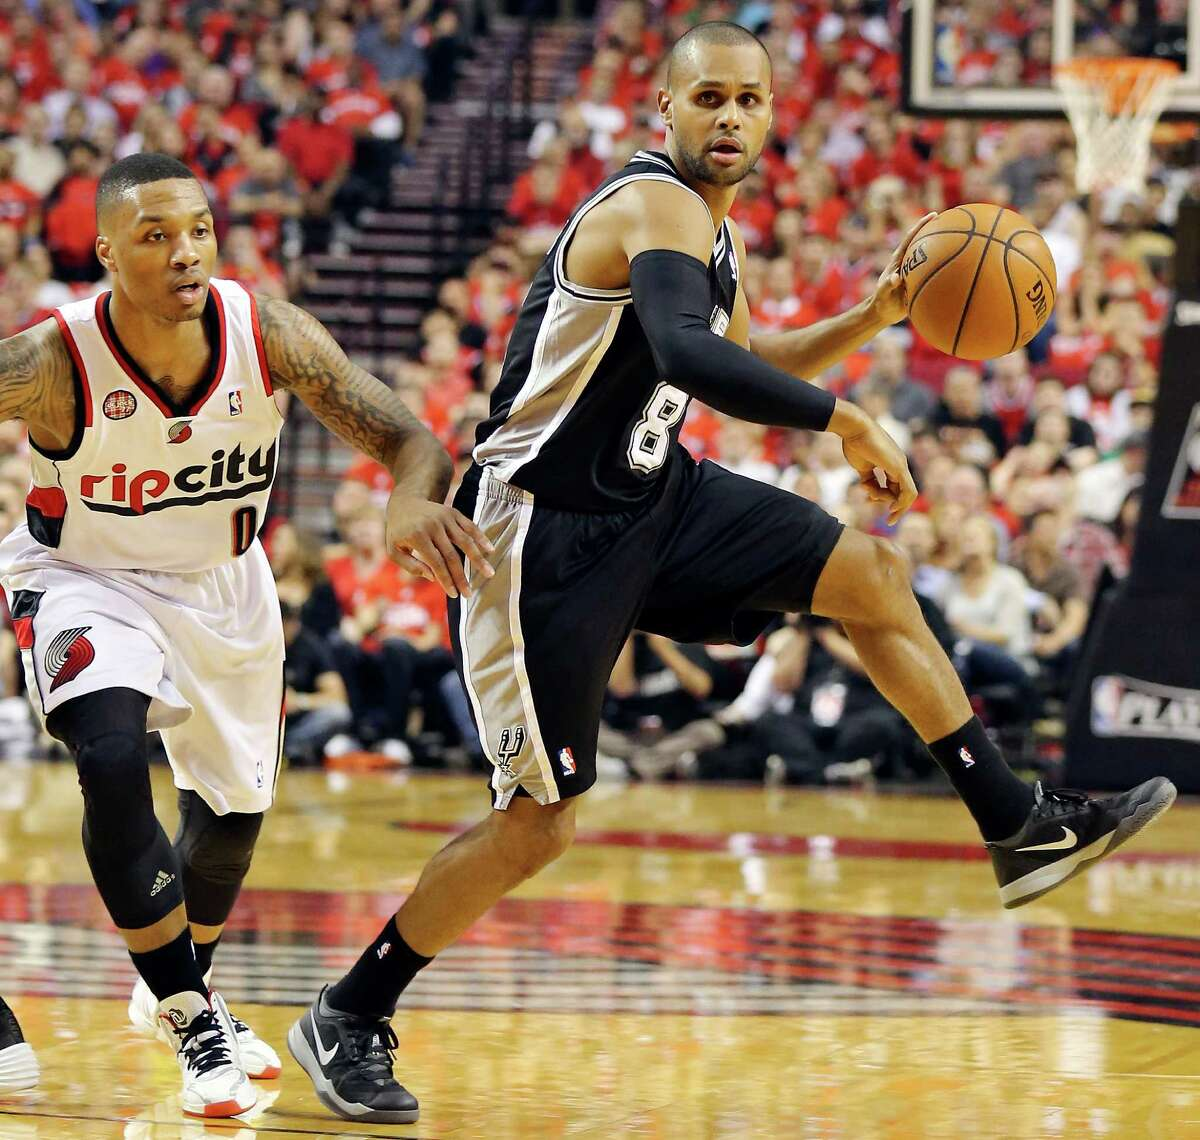 San Antonio Spurs' Patty Mills looks for room around Portland Trail Blazers' Damian Lillard during first half action of Game 4 in the Western Conference semifinals Monday May 12, 2014 at the Moda Center in Portland, OR.